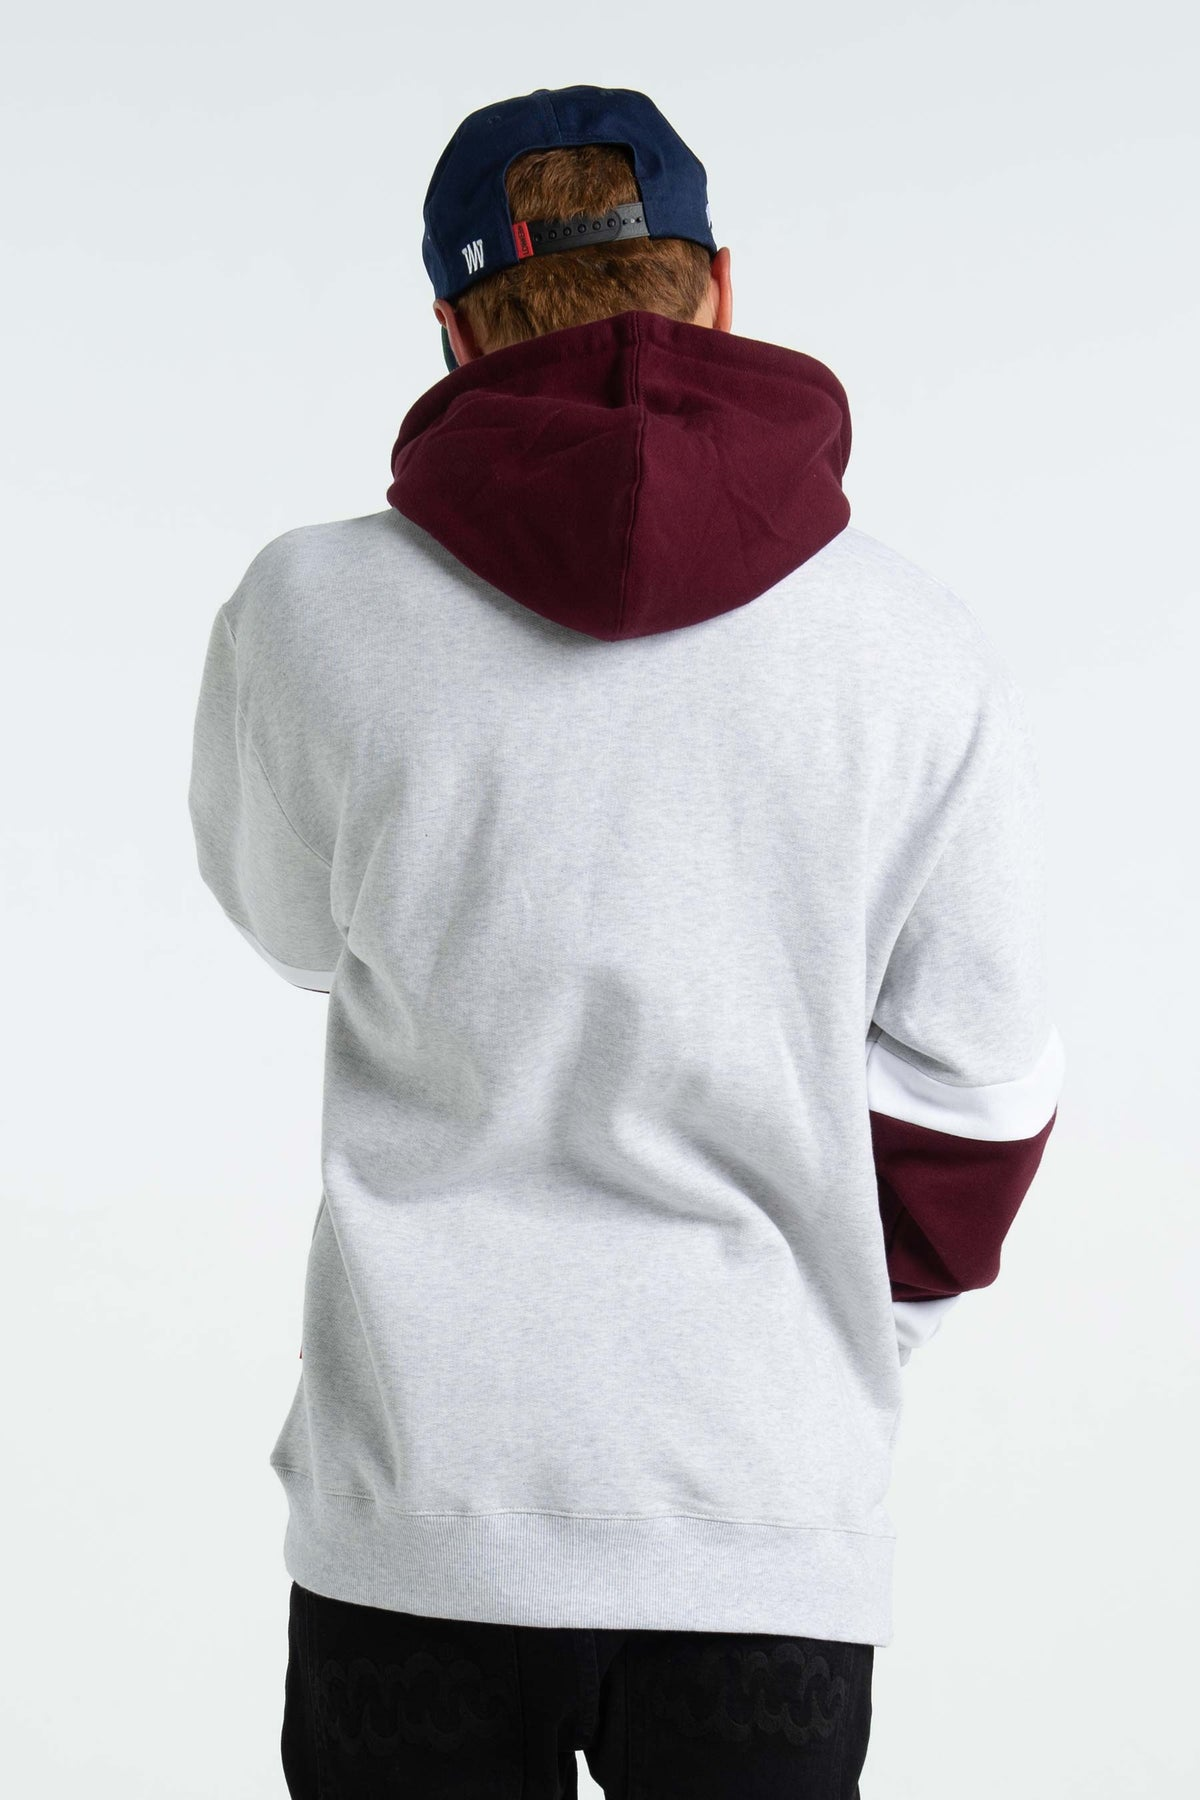 Mens Enforcer Hood - Stadium - Silver Marle/Burgundy/White